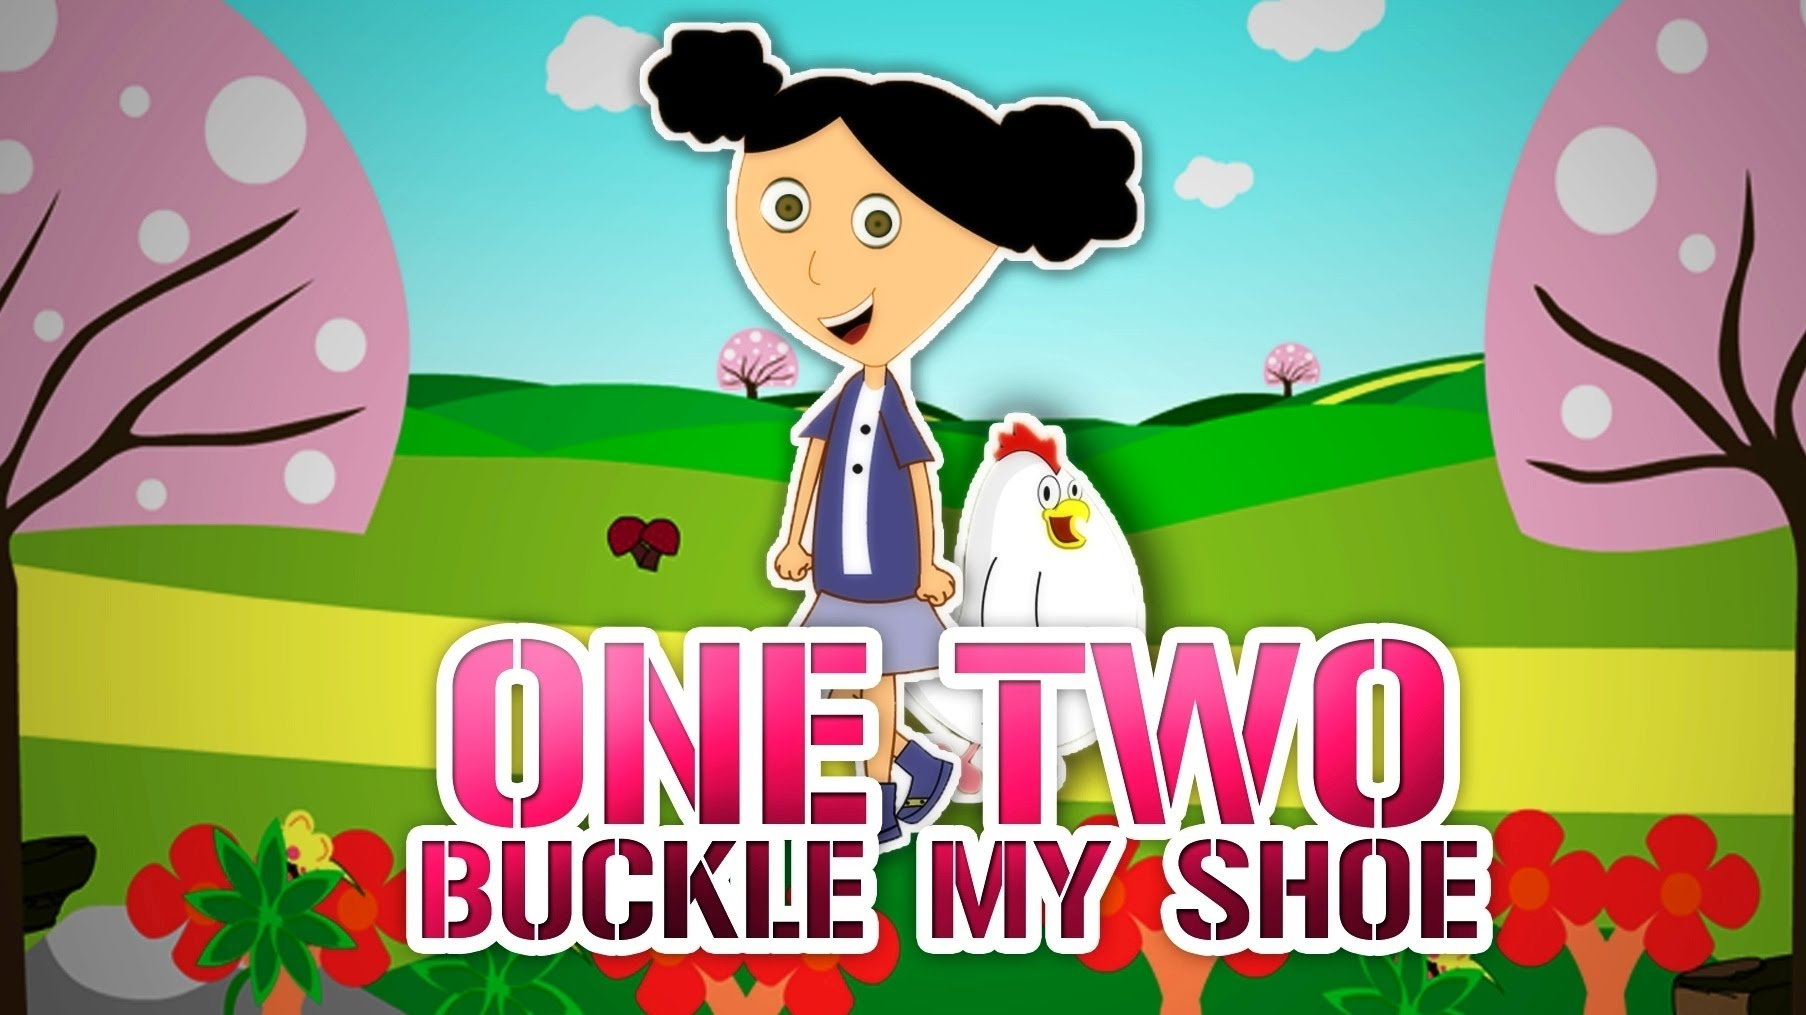 1 2 buckle my shoe clipart graphic freeuse library One Two Buckle My Shoe | Nursery Rhymes With Lyrics | Classic ... graphic freeuse library